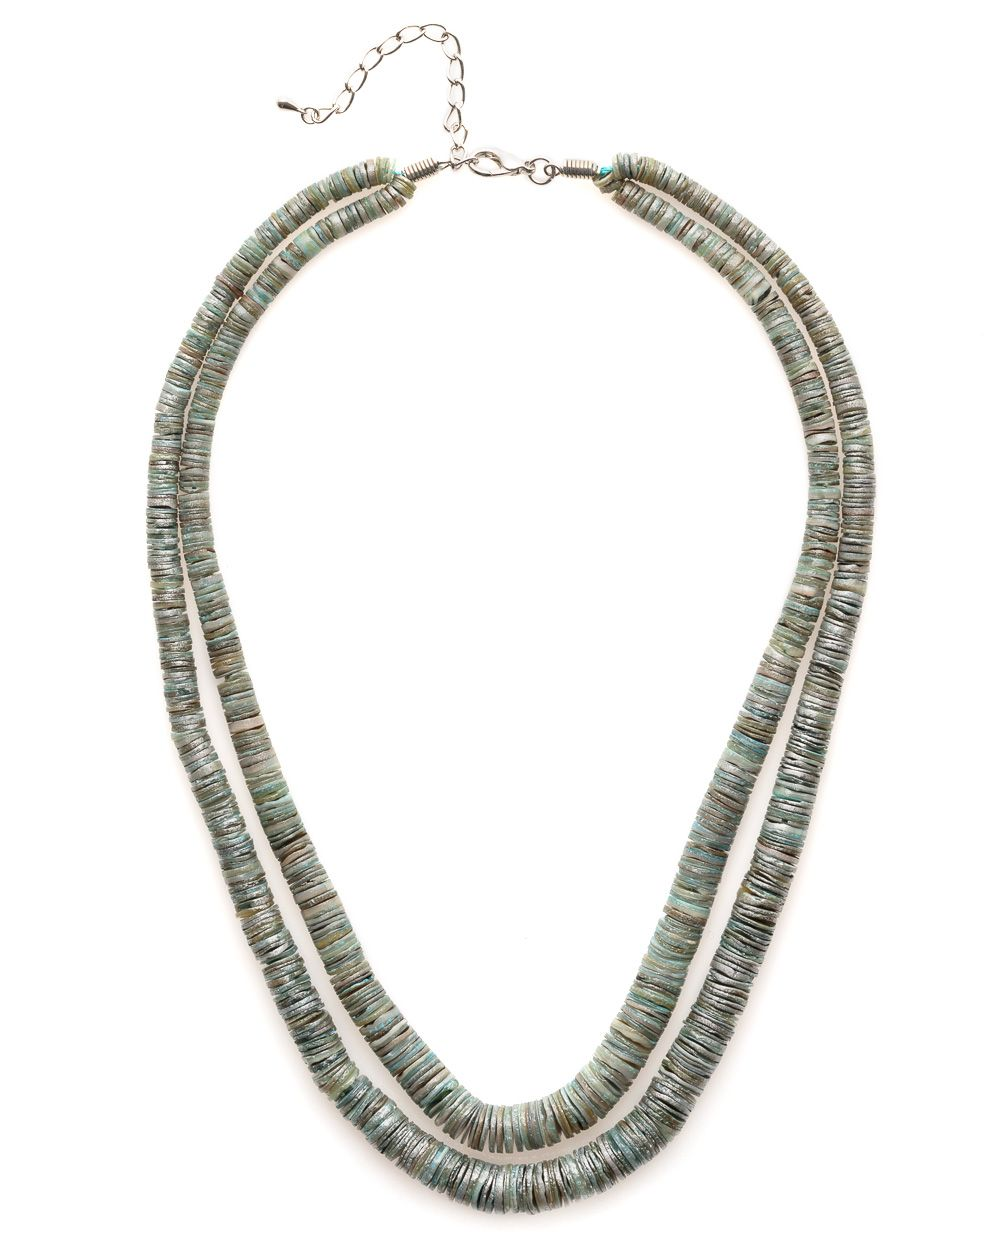 Shell link necklace